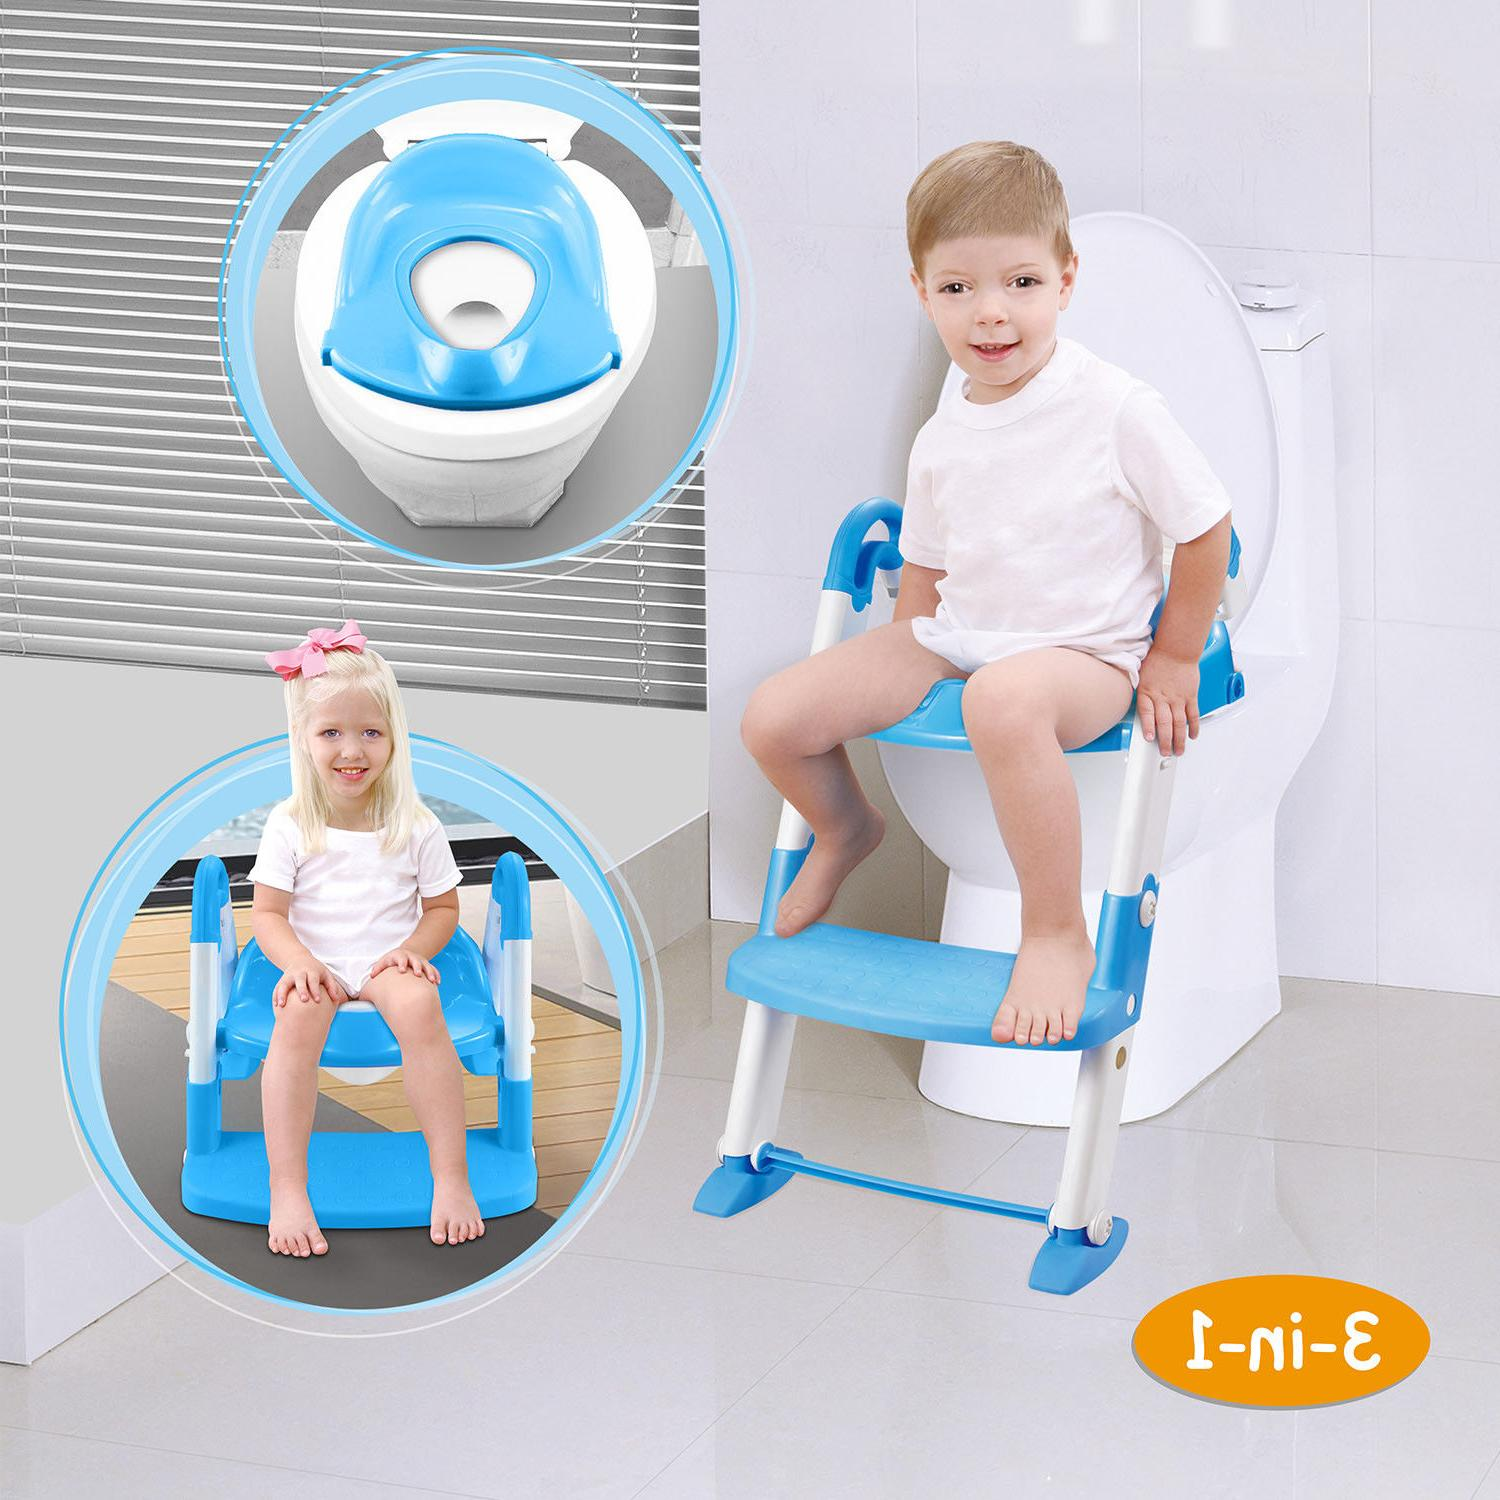 Kids Seat with Stool for Child Toilet Chair